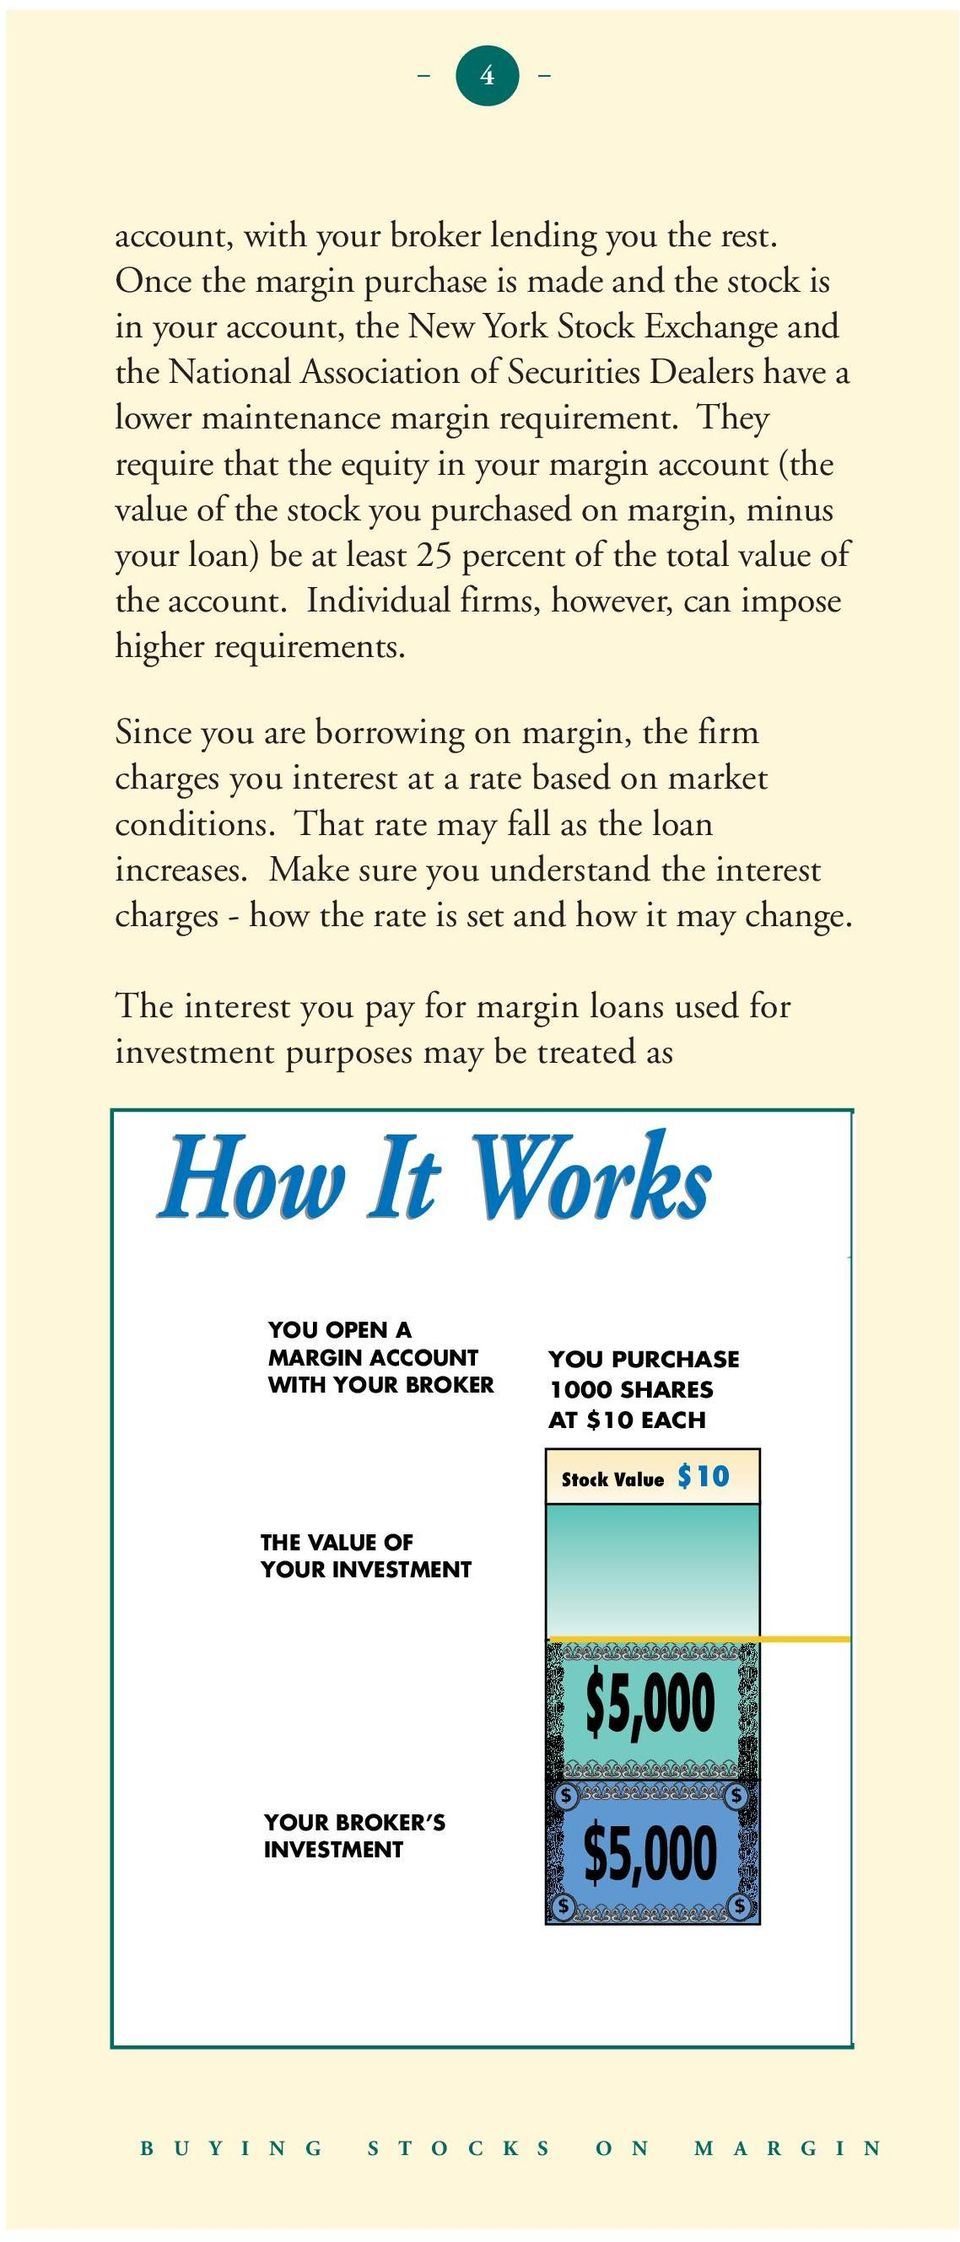 They require that the equity in your margin account (the value of the stock you purchased on margin, minus your loan) be at least 25 percent of the total value of the account.